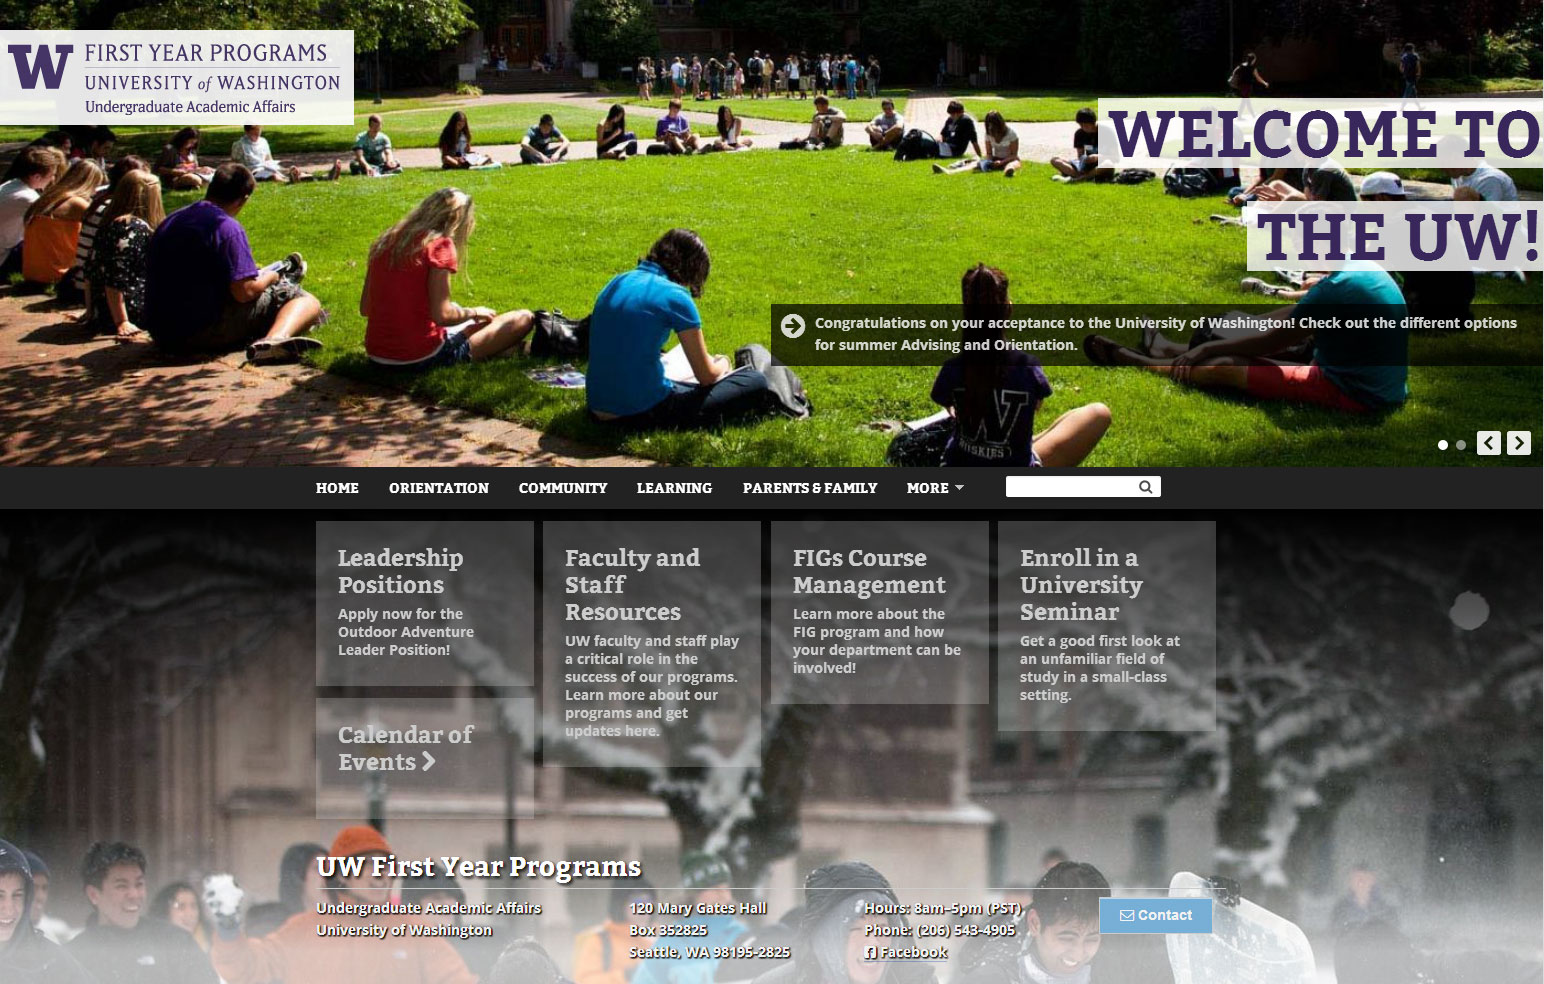 First Year Programs at the University of Washington